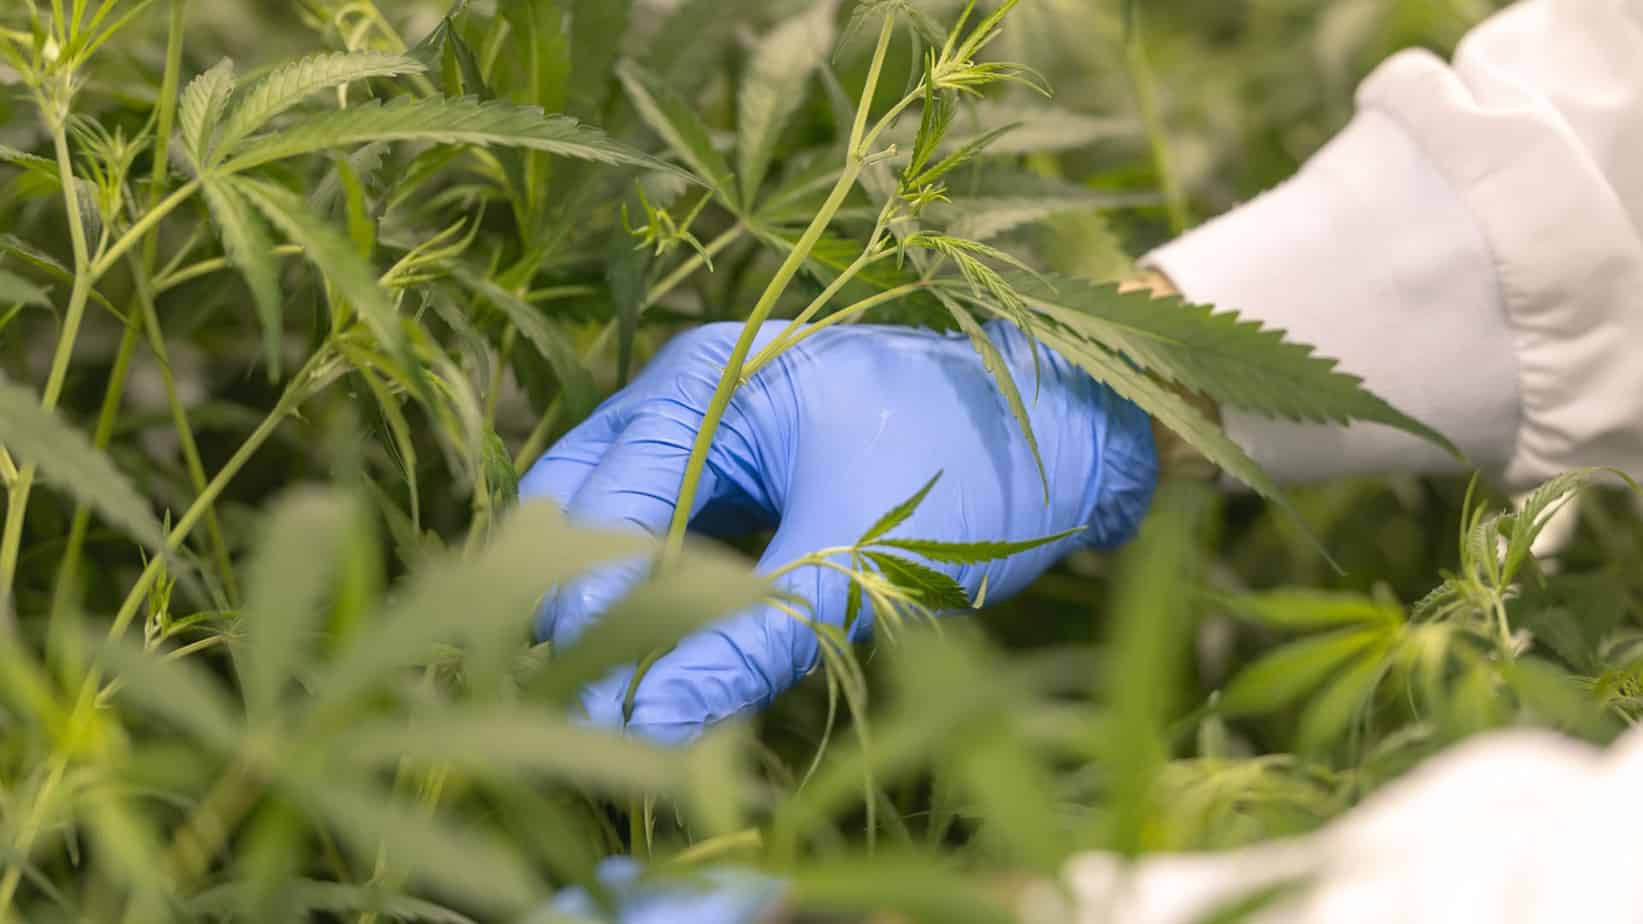 As the South African cannabis market slowly opens up, Cheeba Africa CEO Trenton Birch warns small-scale producers to be wary of the